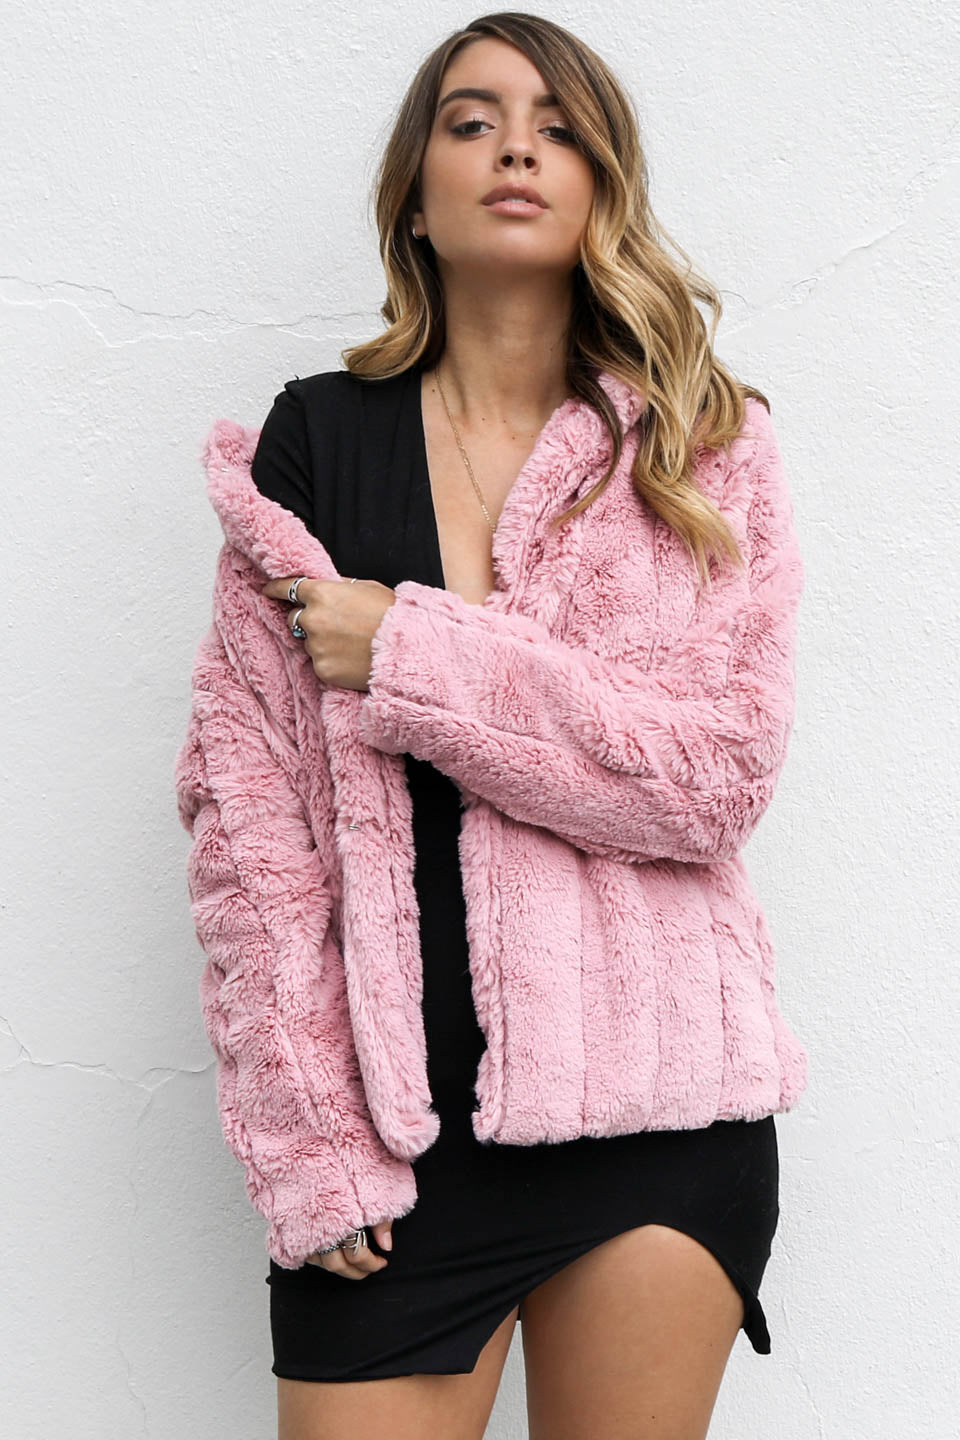 Call It Quits Mauve Fur Coat - Amazing Lace